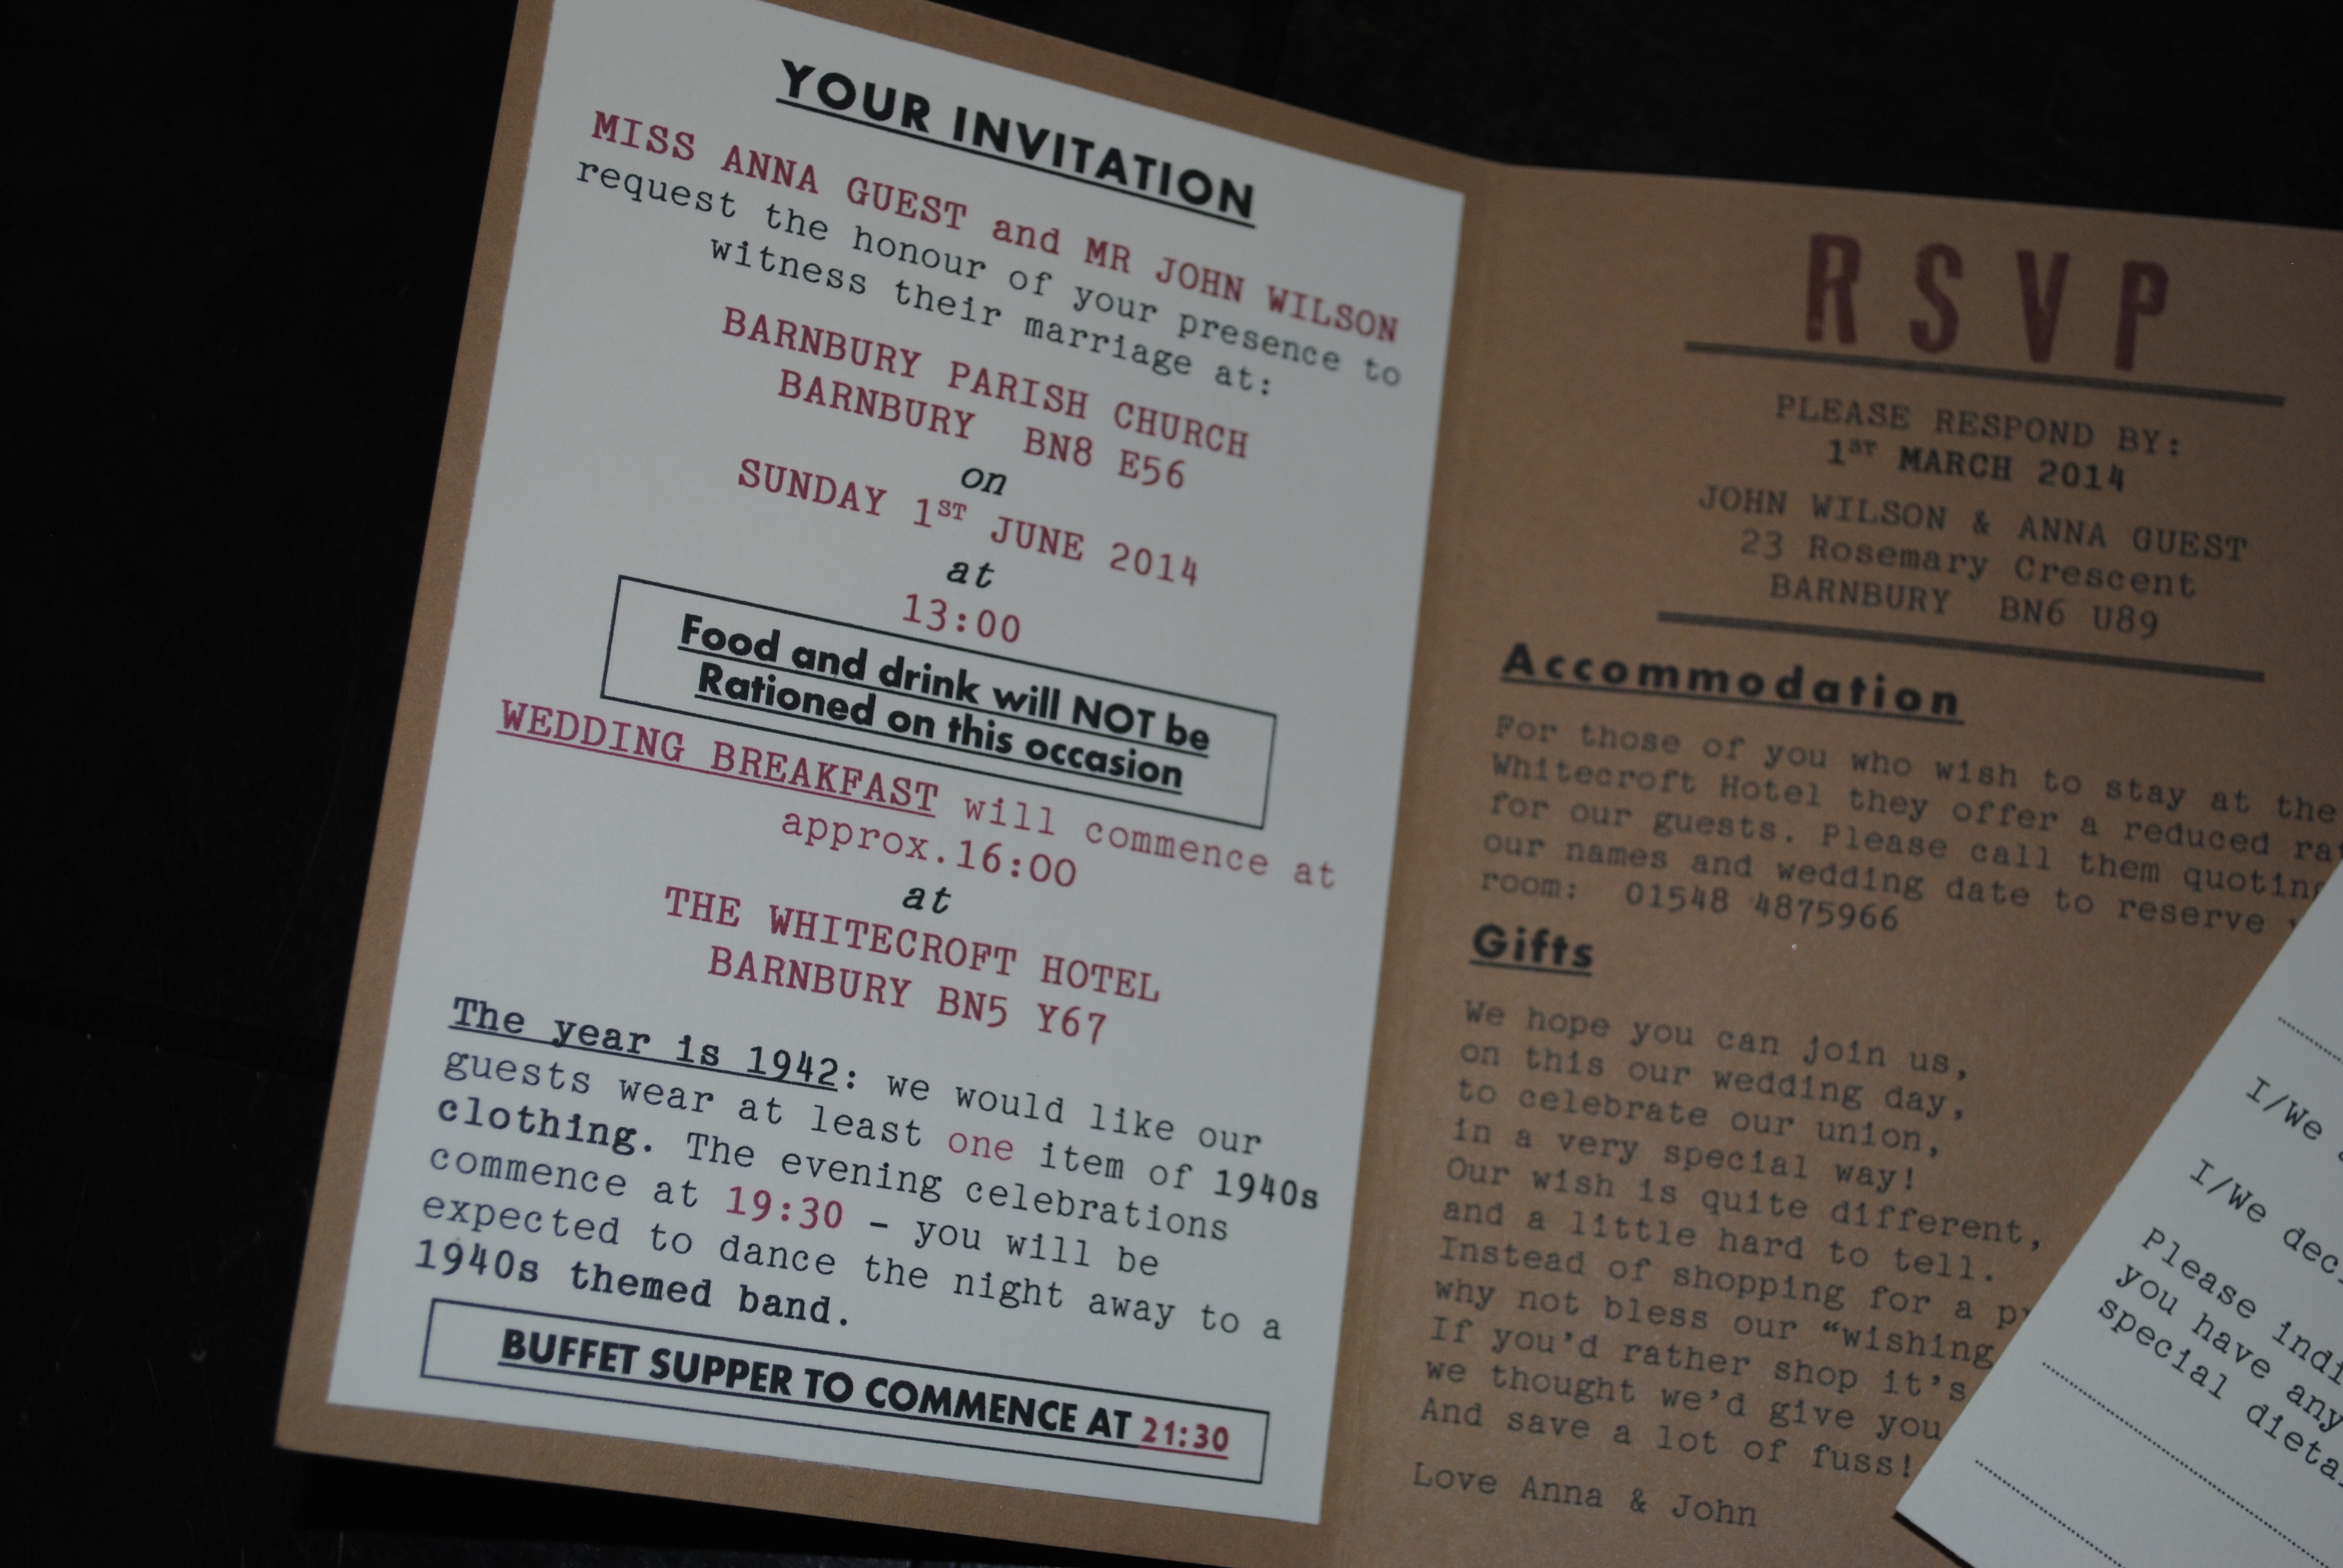 Ration Book Day Invite inside